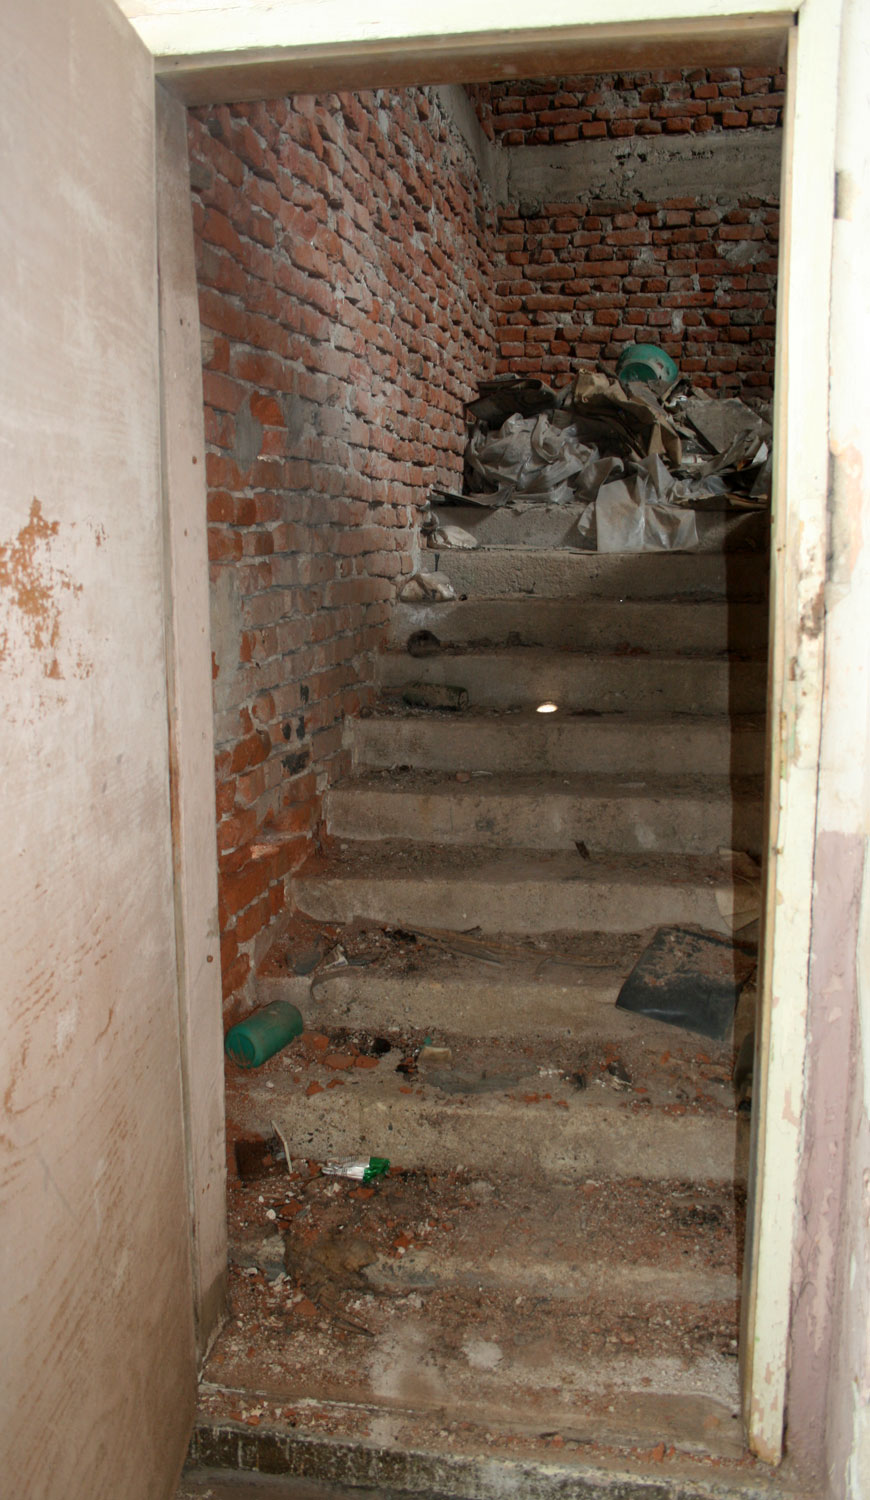 The Stairs Up To The Attic   Note They Are Concrete Too